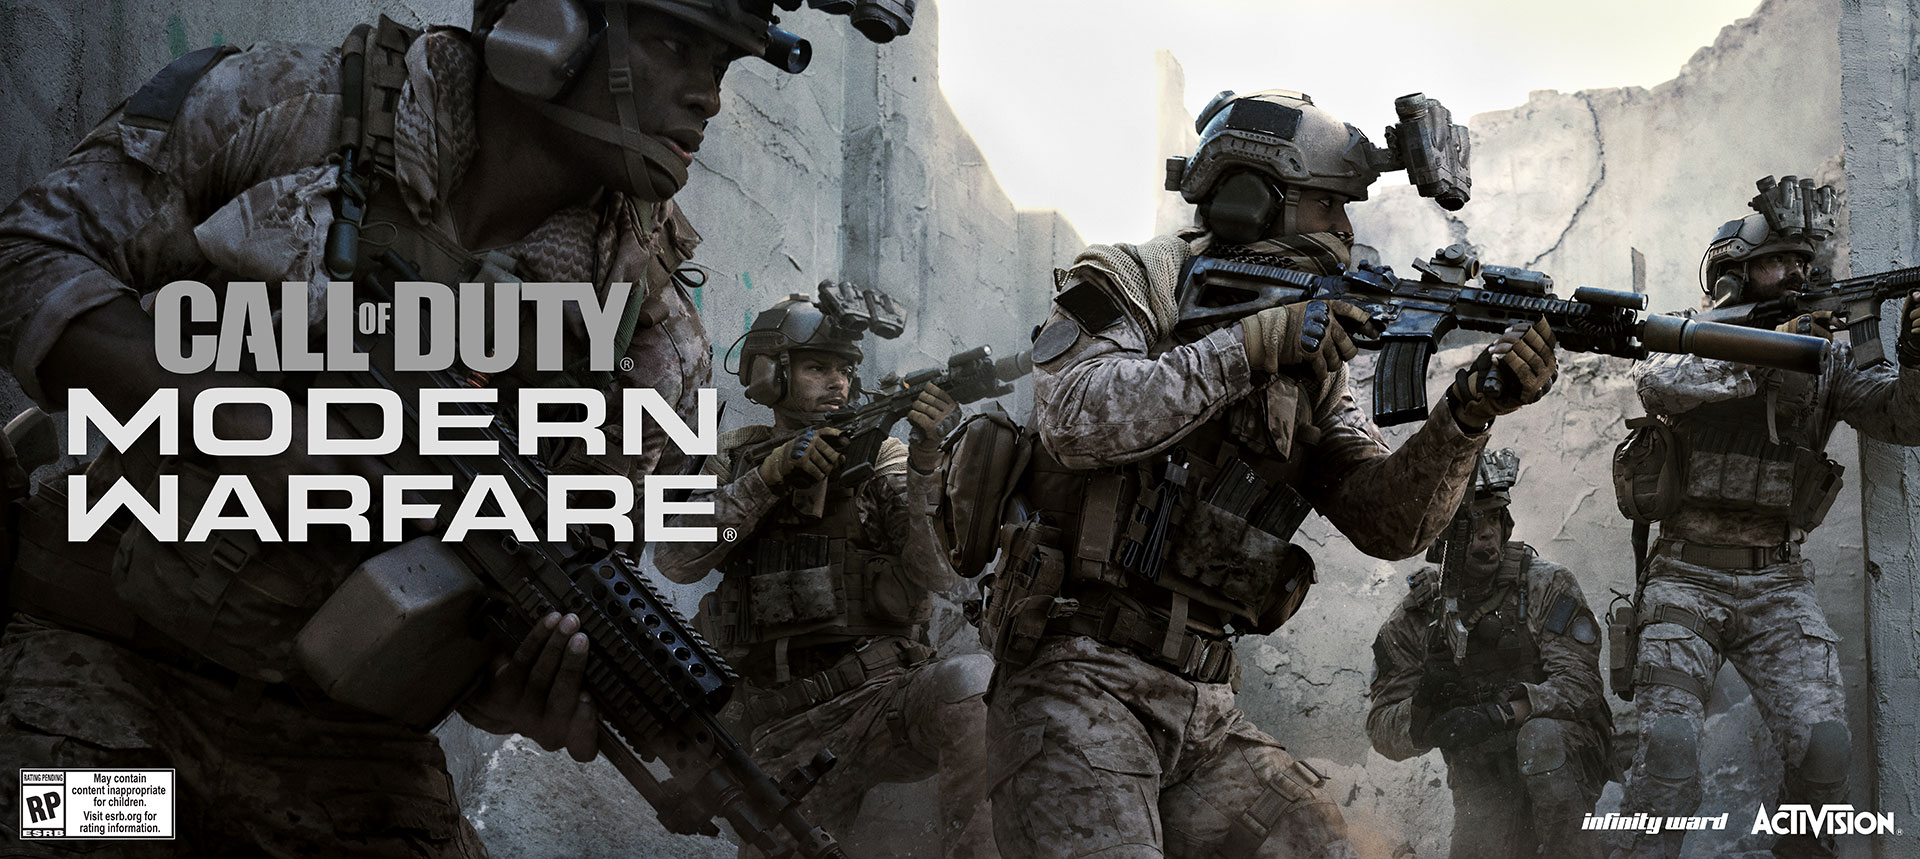 Announcement: Call of Duty®: Modern Warfare® Editions Now Available